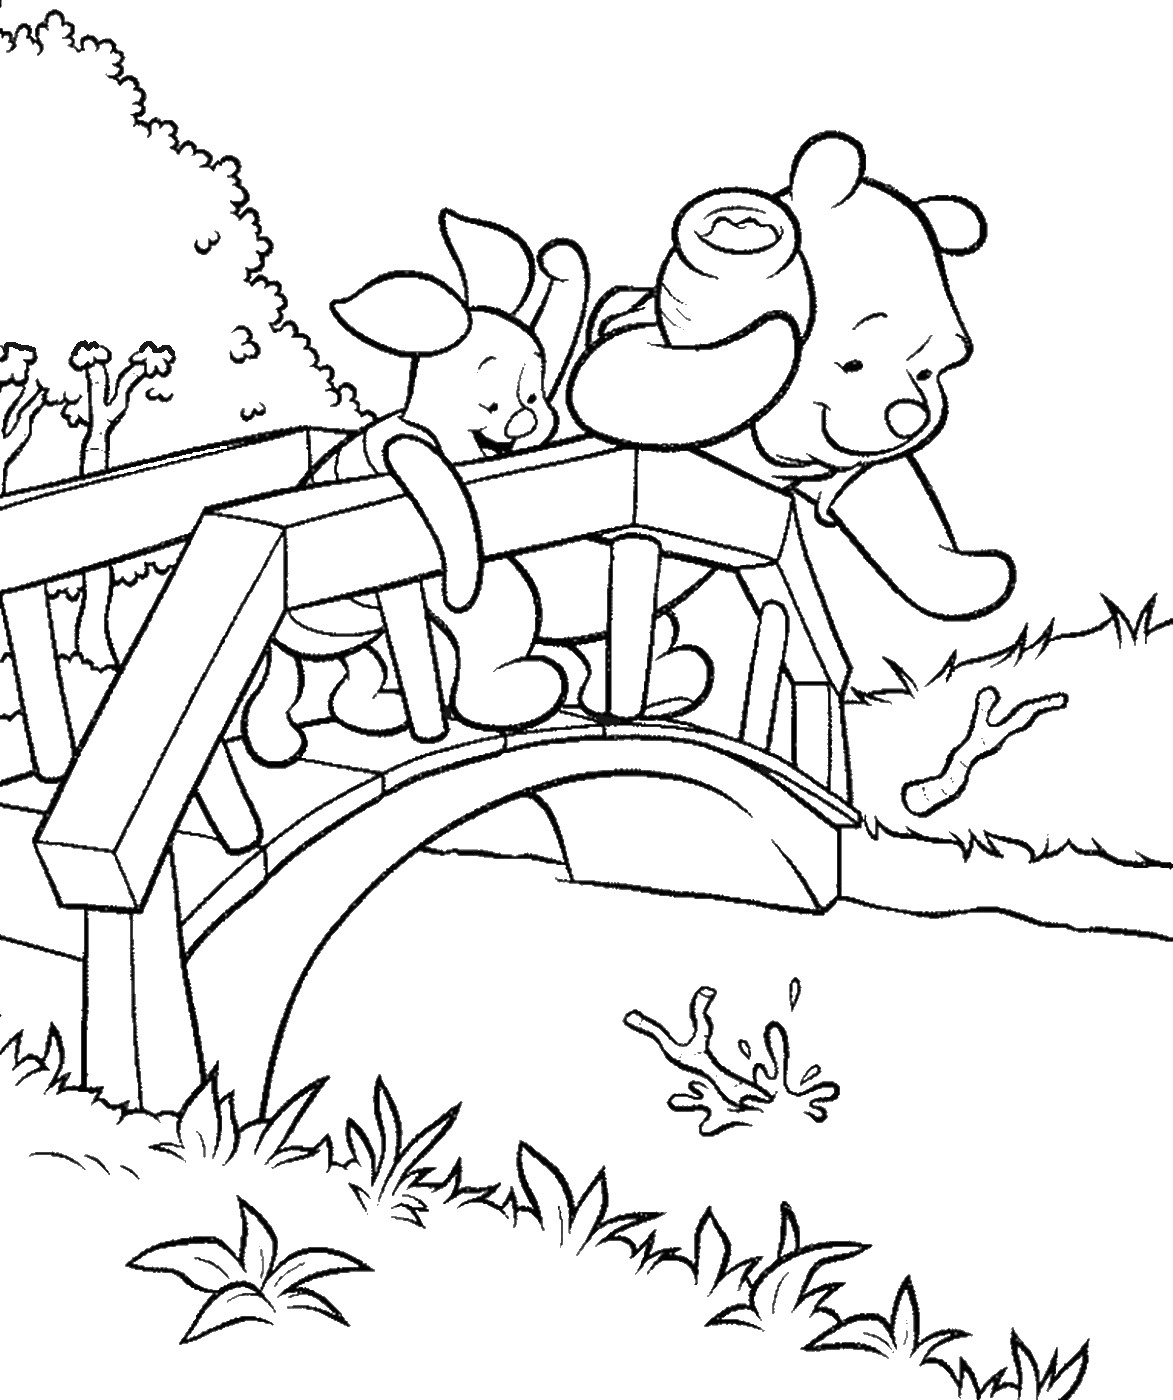 winnie the pooh pictures to color 19 new baby pooh winnie color to pooh pictures the